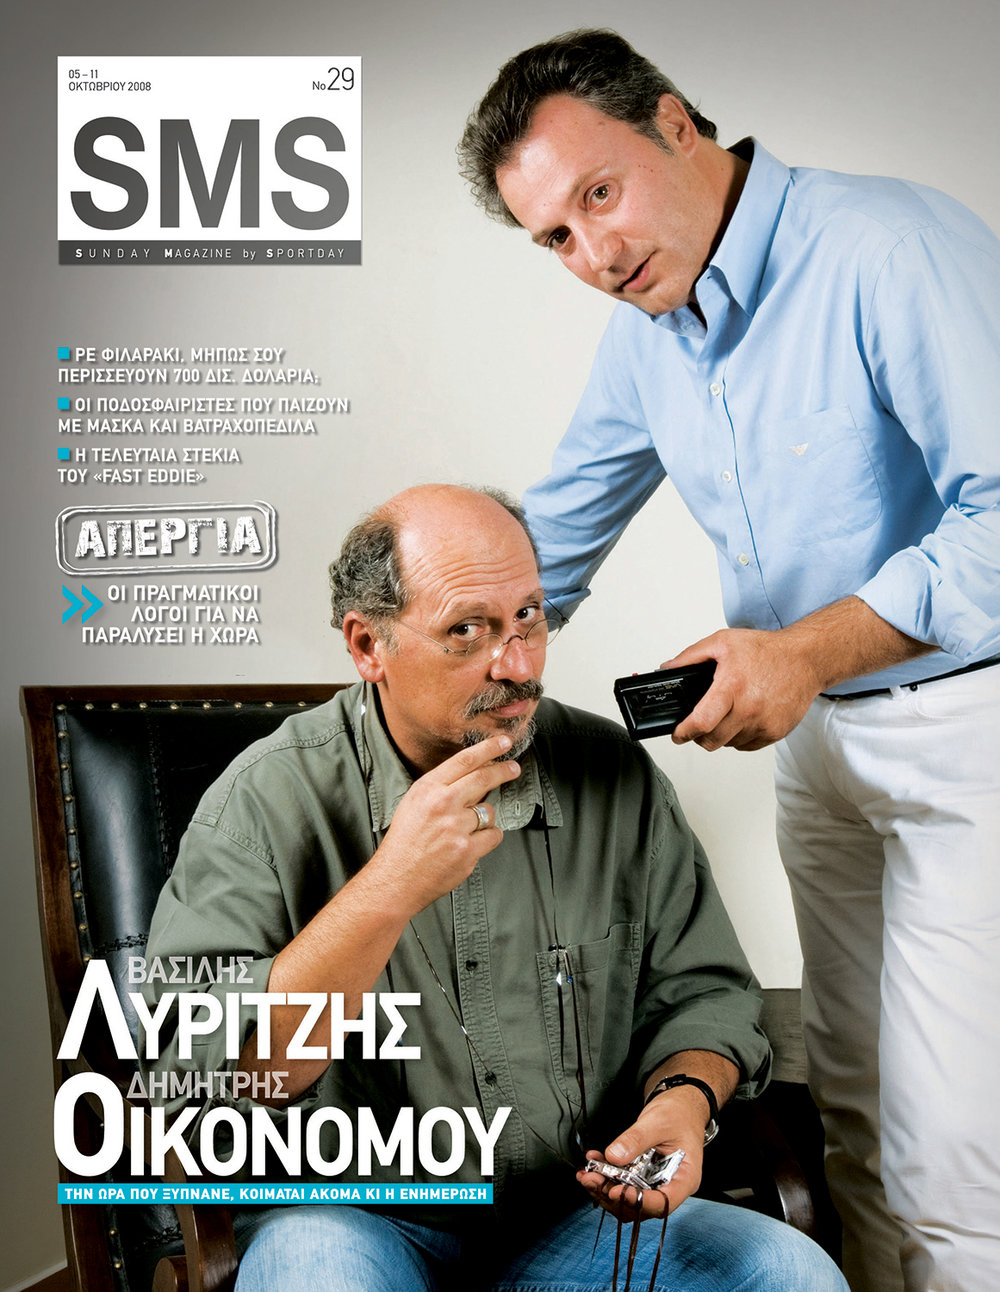 Vasilis Lyritzis-Dimitris Oikonomou / journalists / SMS Sportday No 29